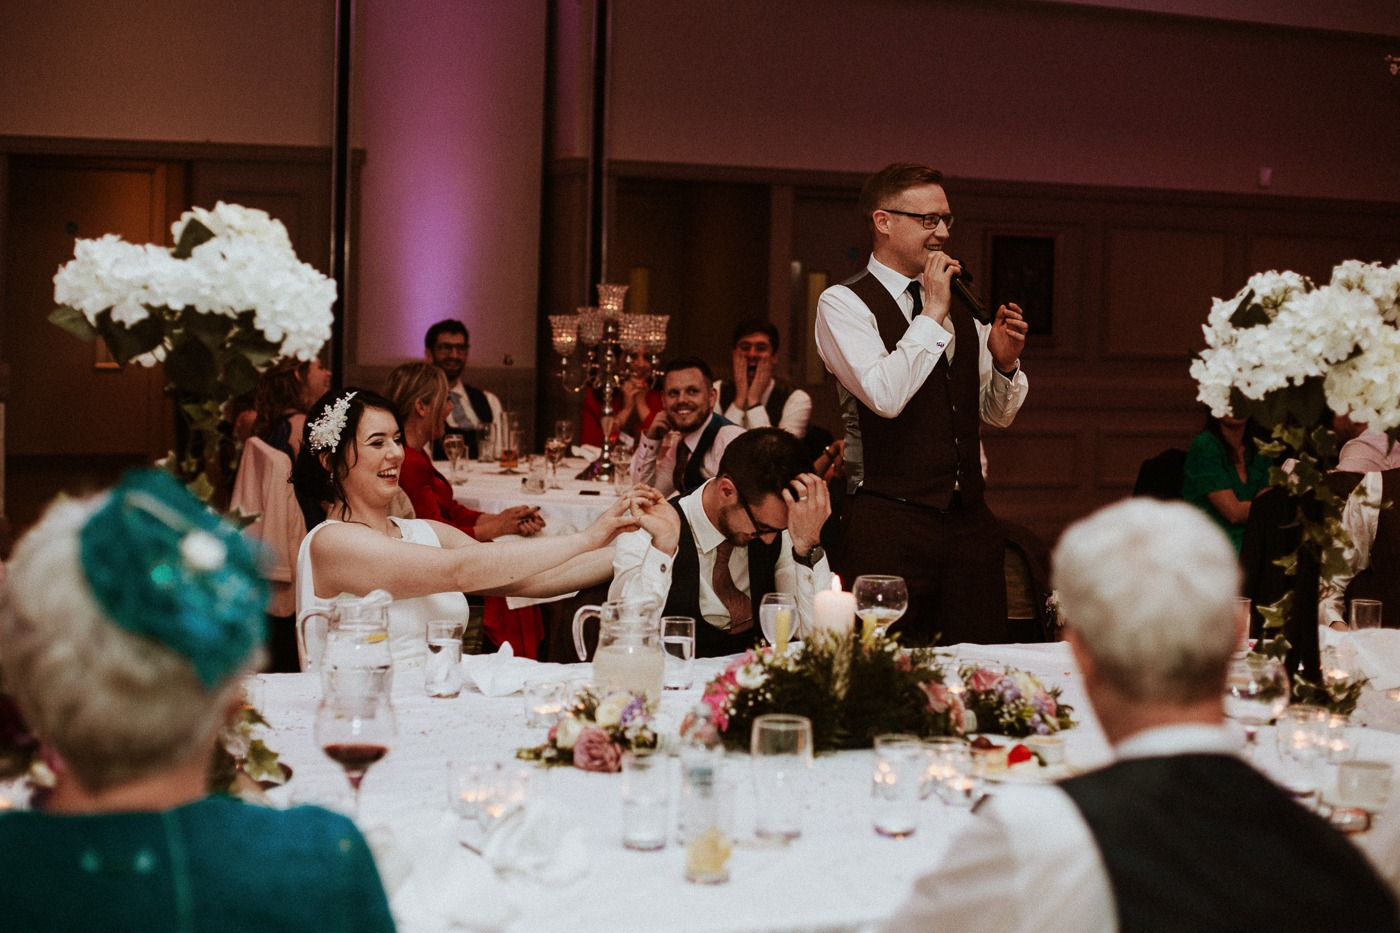 A group of people sitting at a table in front of a wedding cake